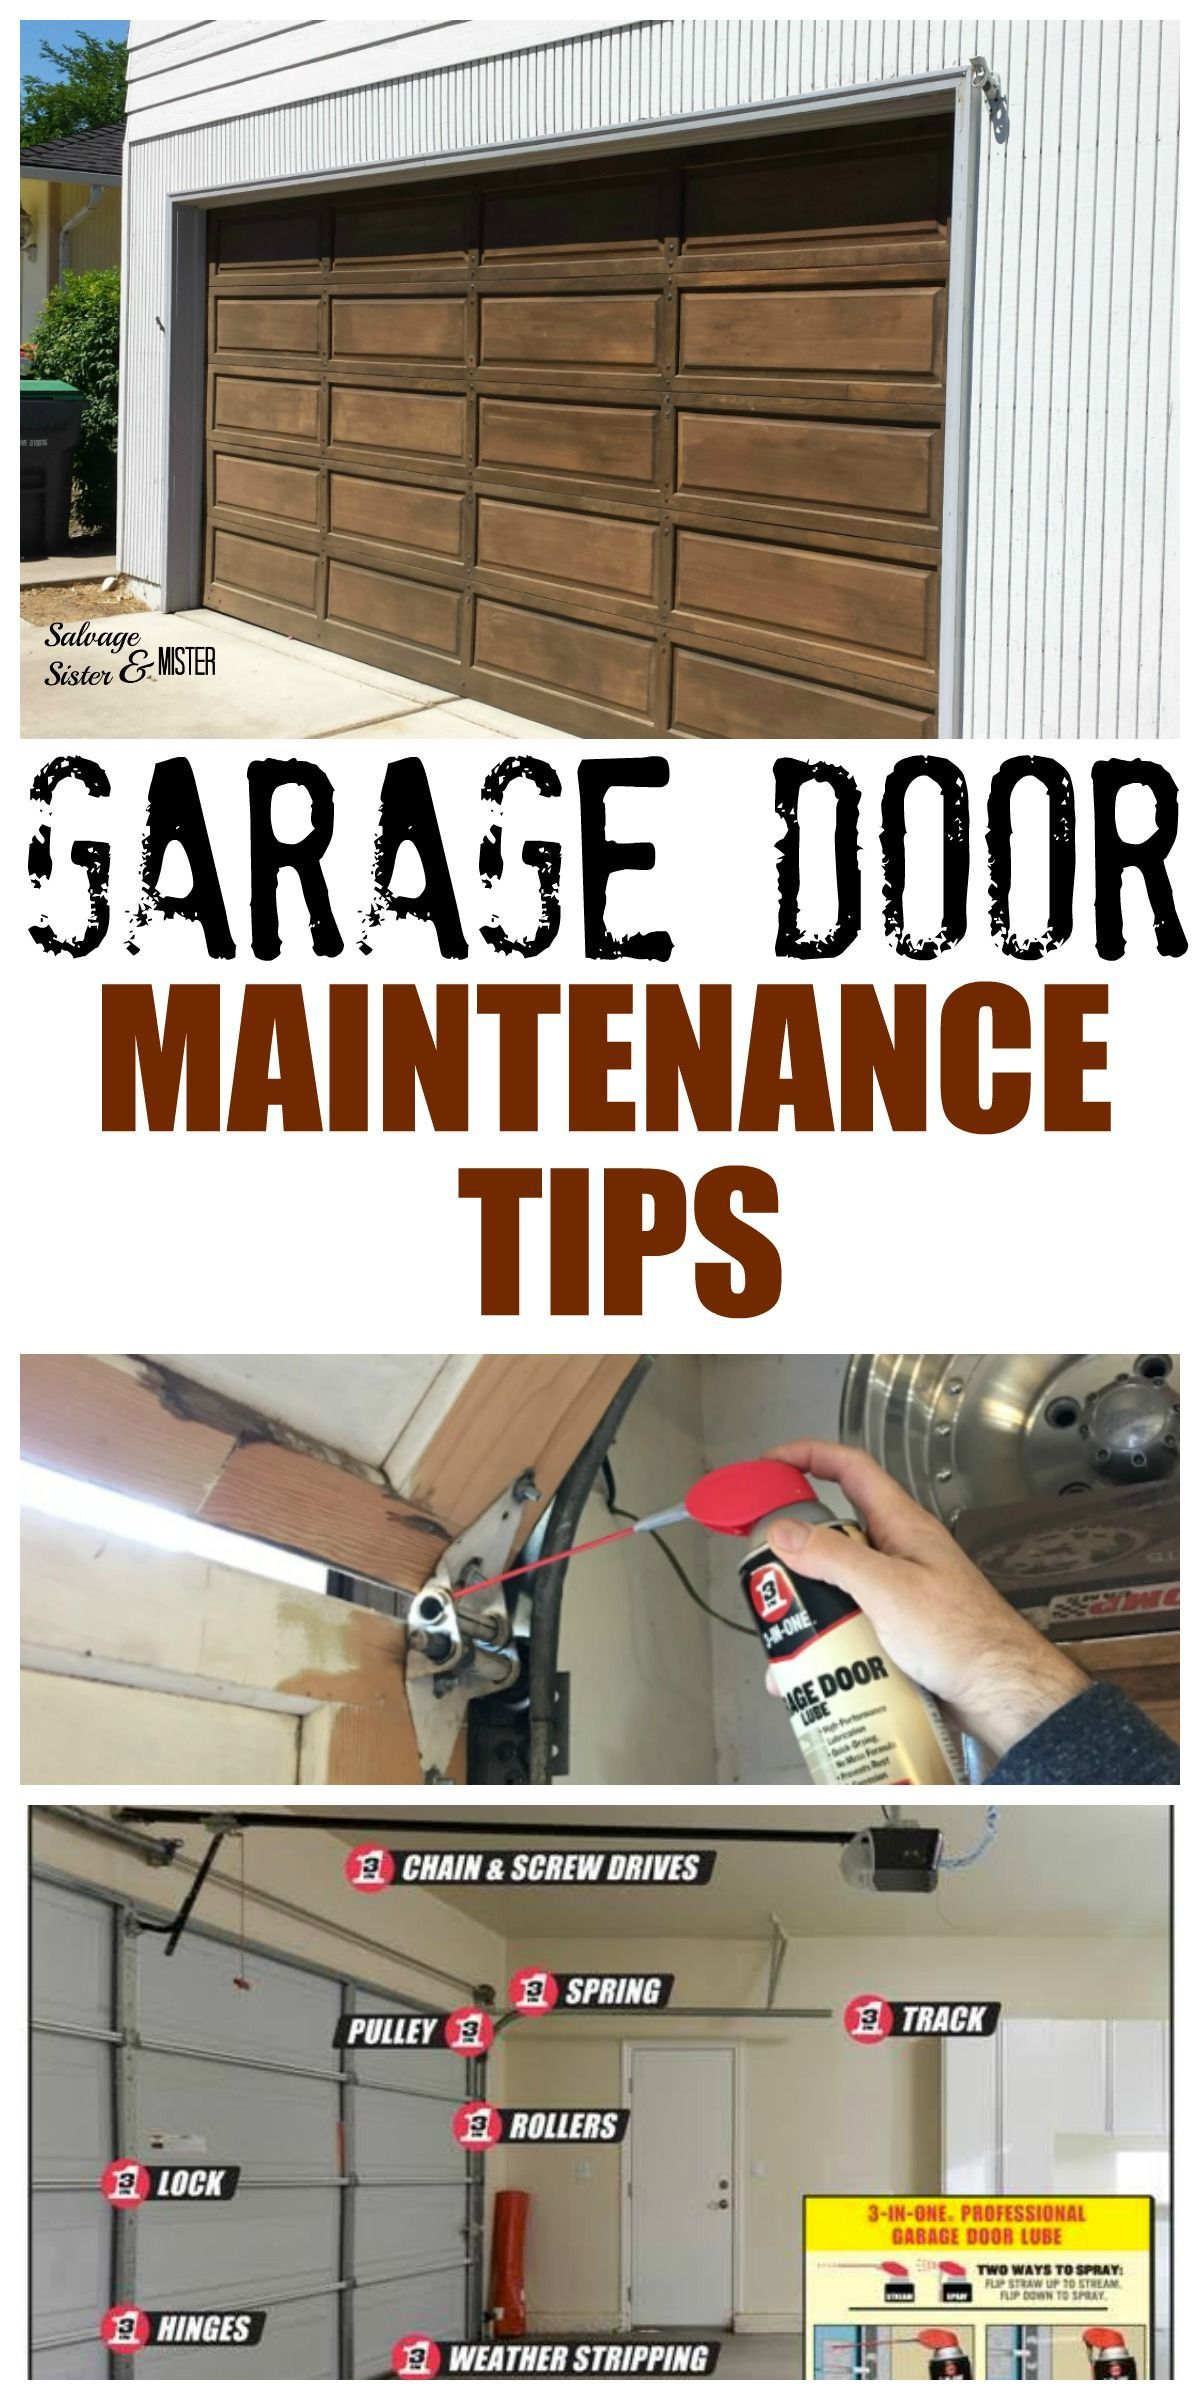 Photo of Garage Door Maintenance Tips – Salvage Sister and Mister